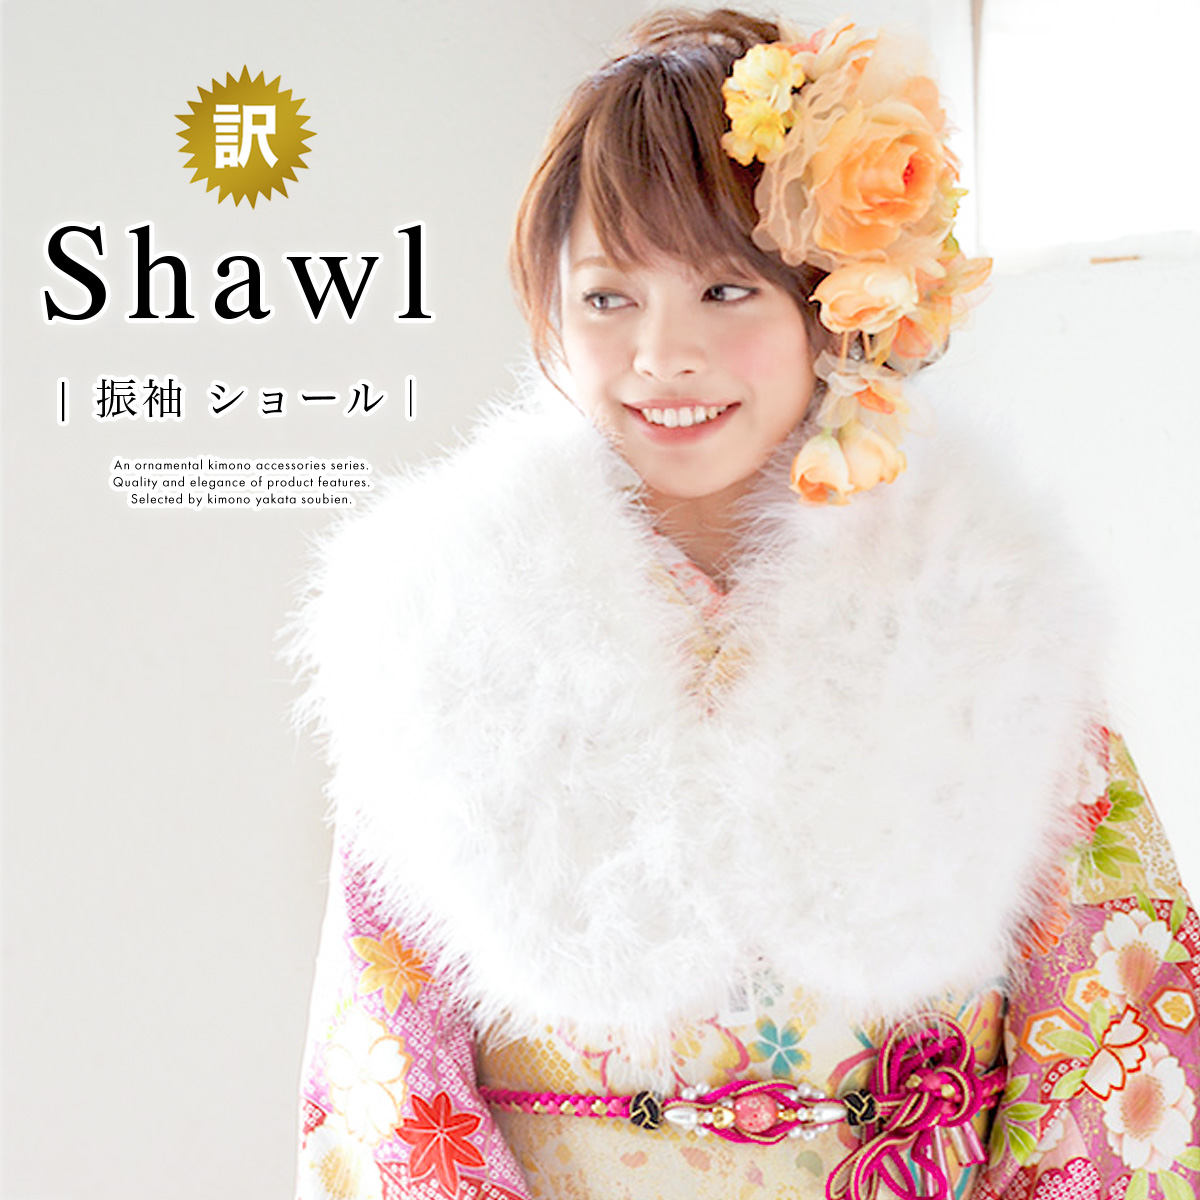 Furisode for feather shawl coming of age ceremony kimono for fluffy shawl!